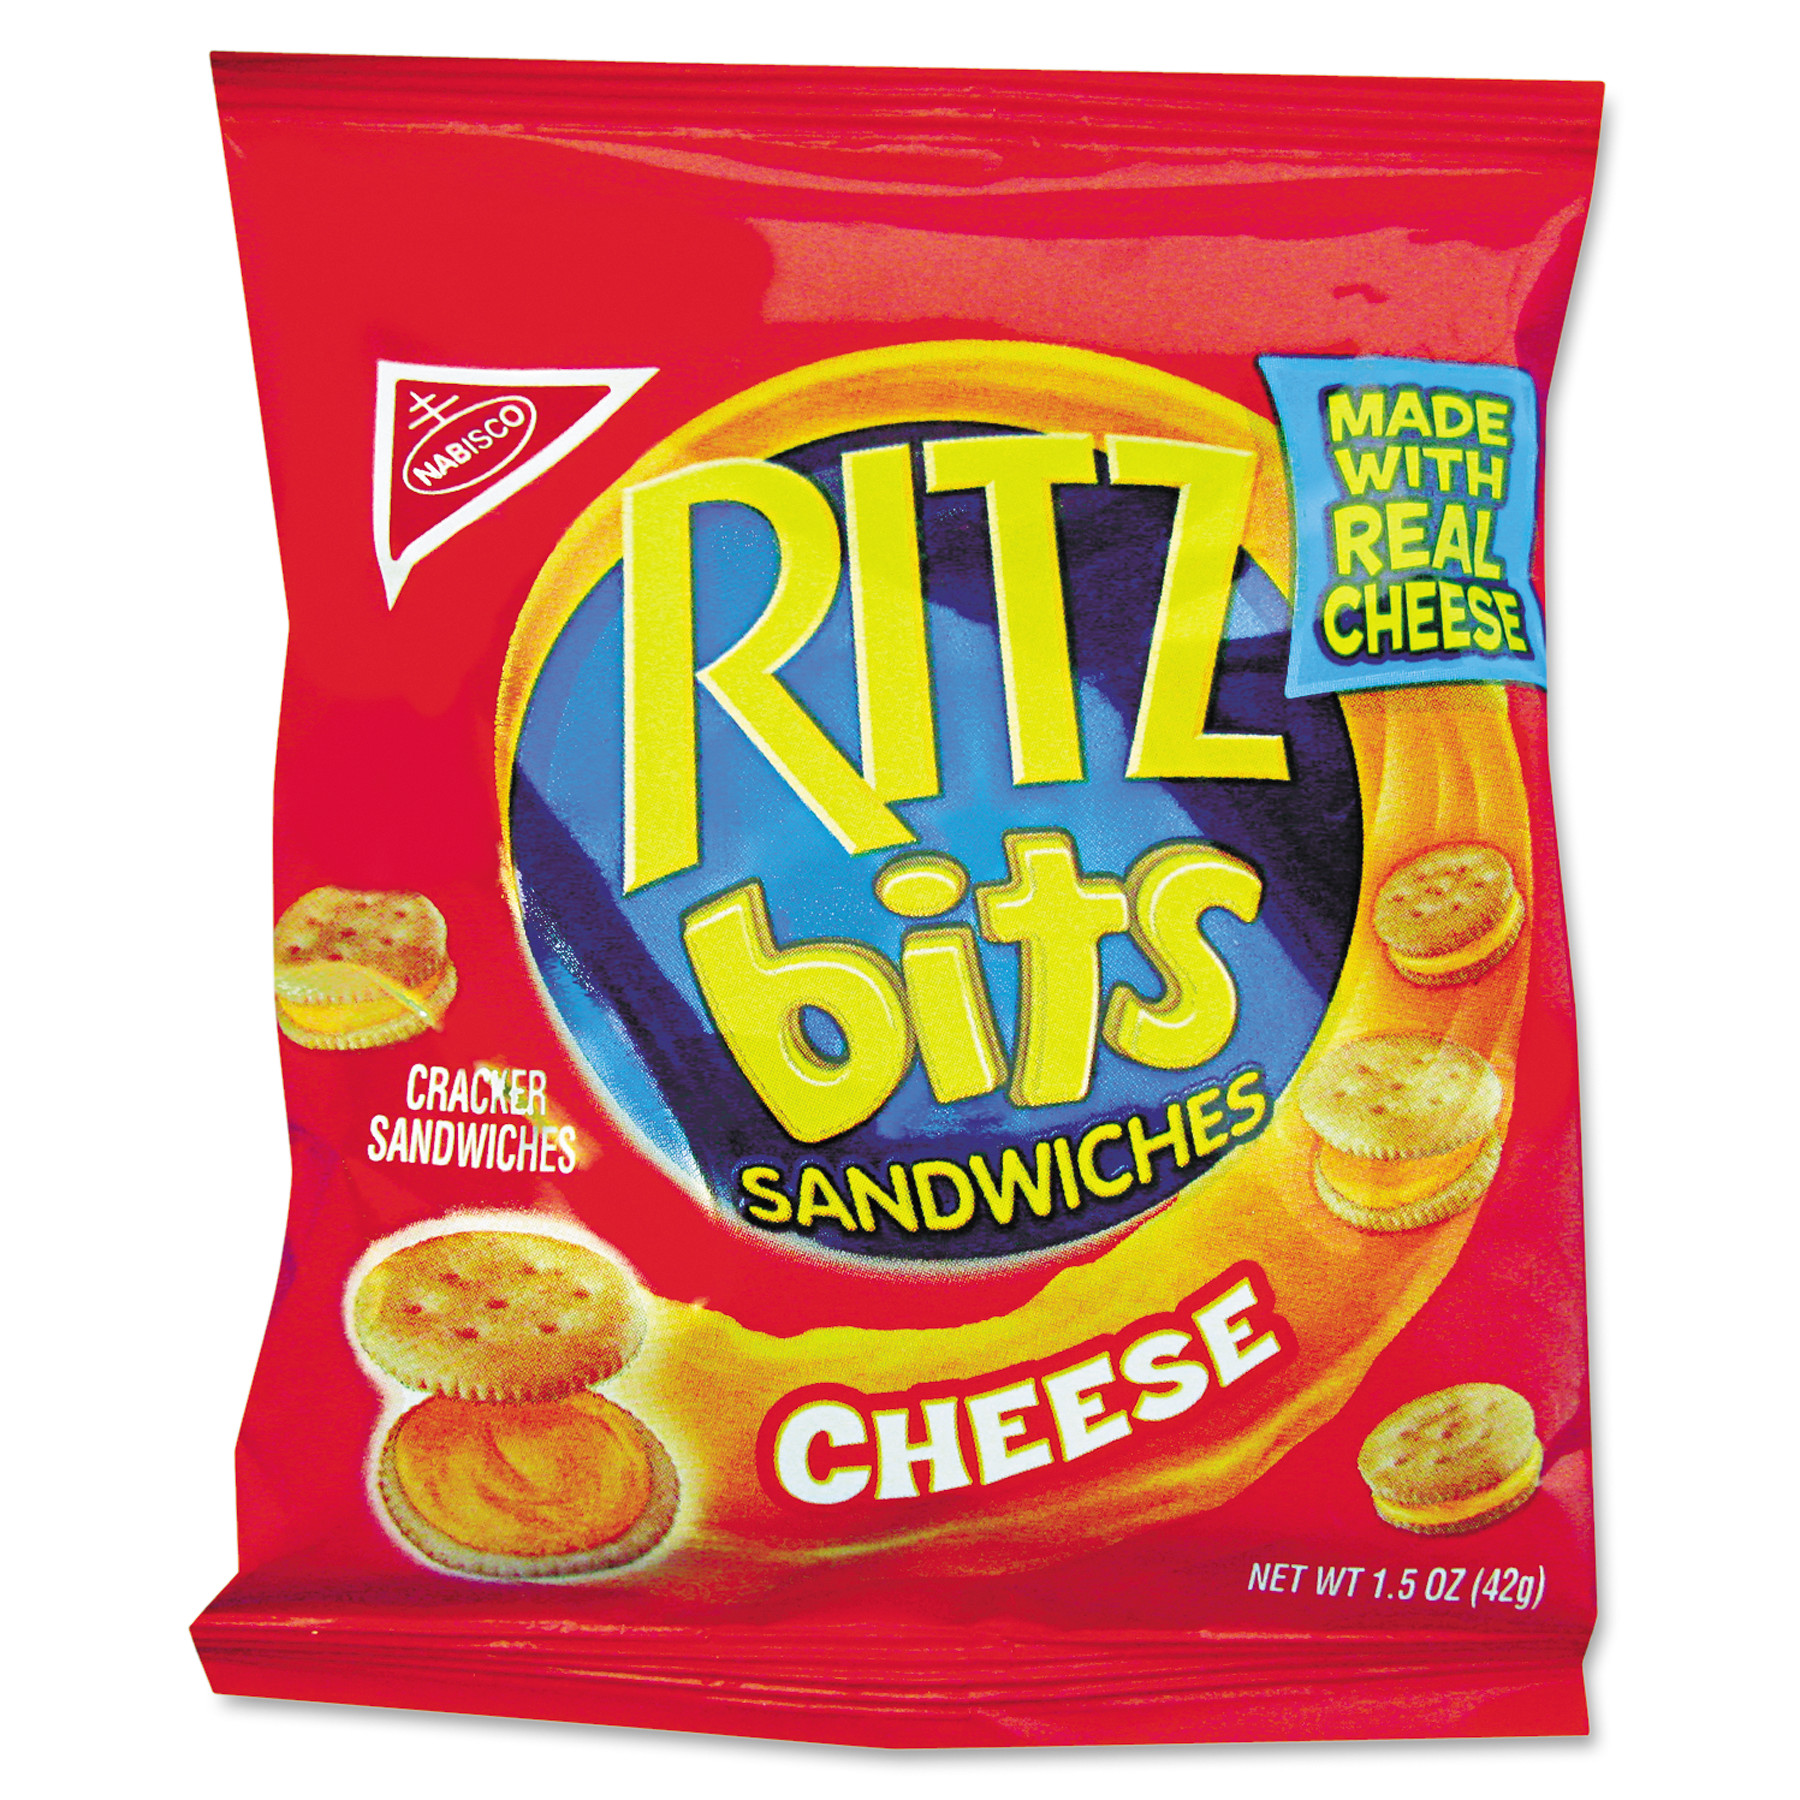 Nabisco Ritz Bits Cheese Cracker Sandwiches, 1.5 oz, 60 count